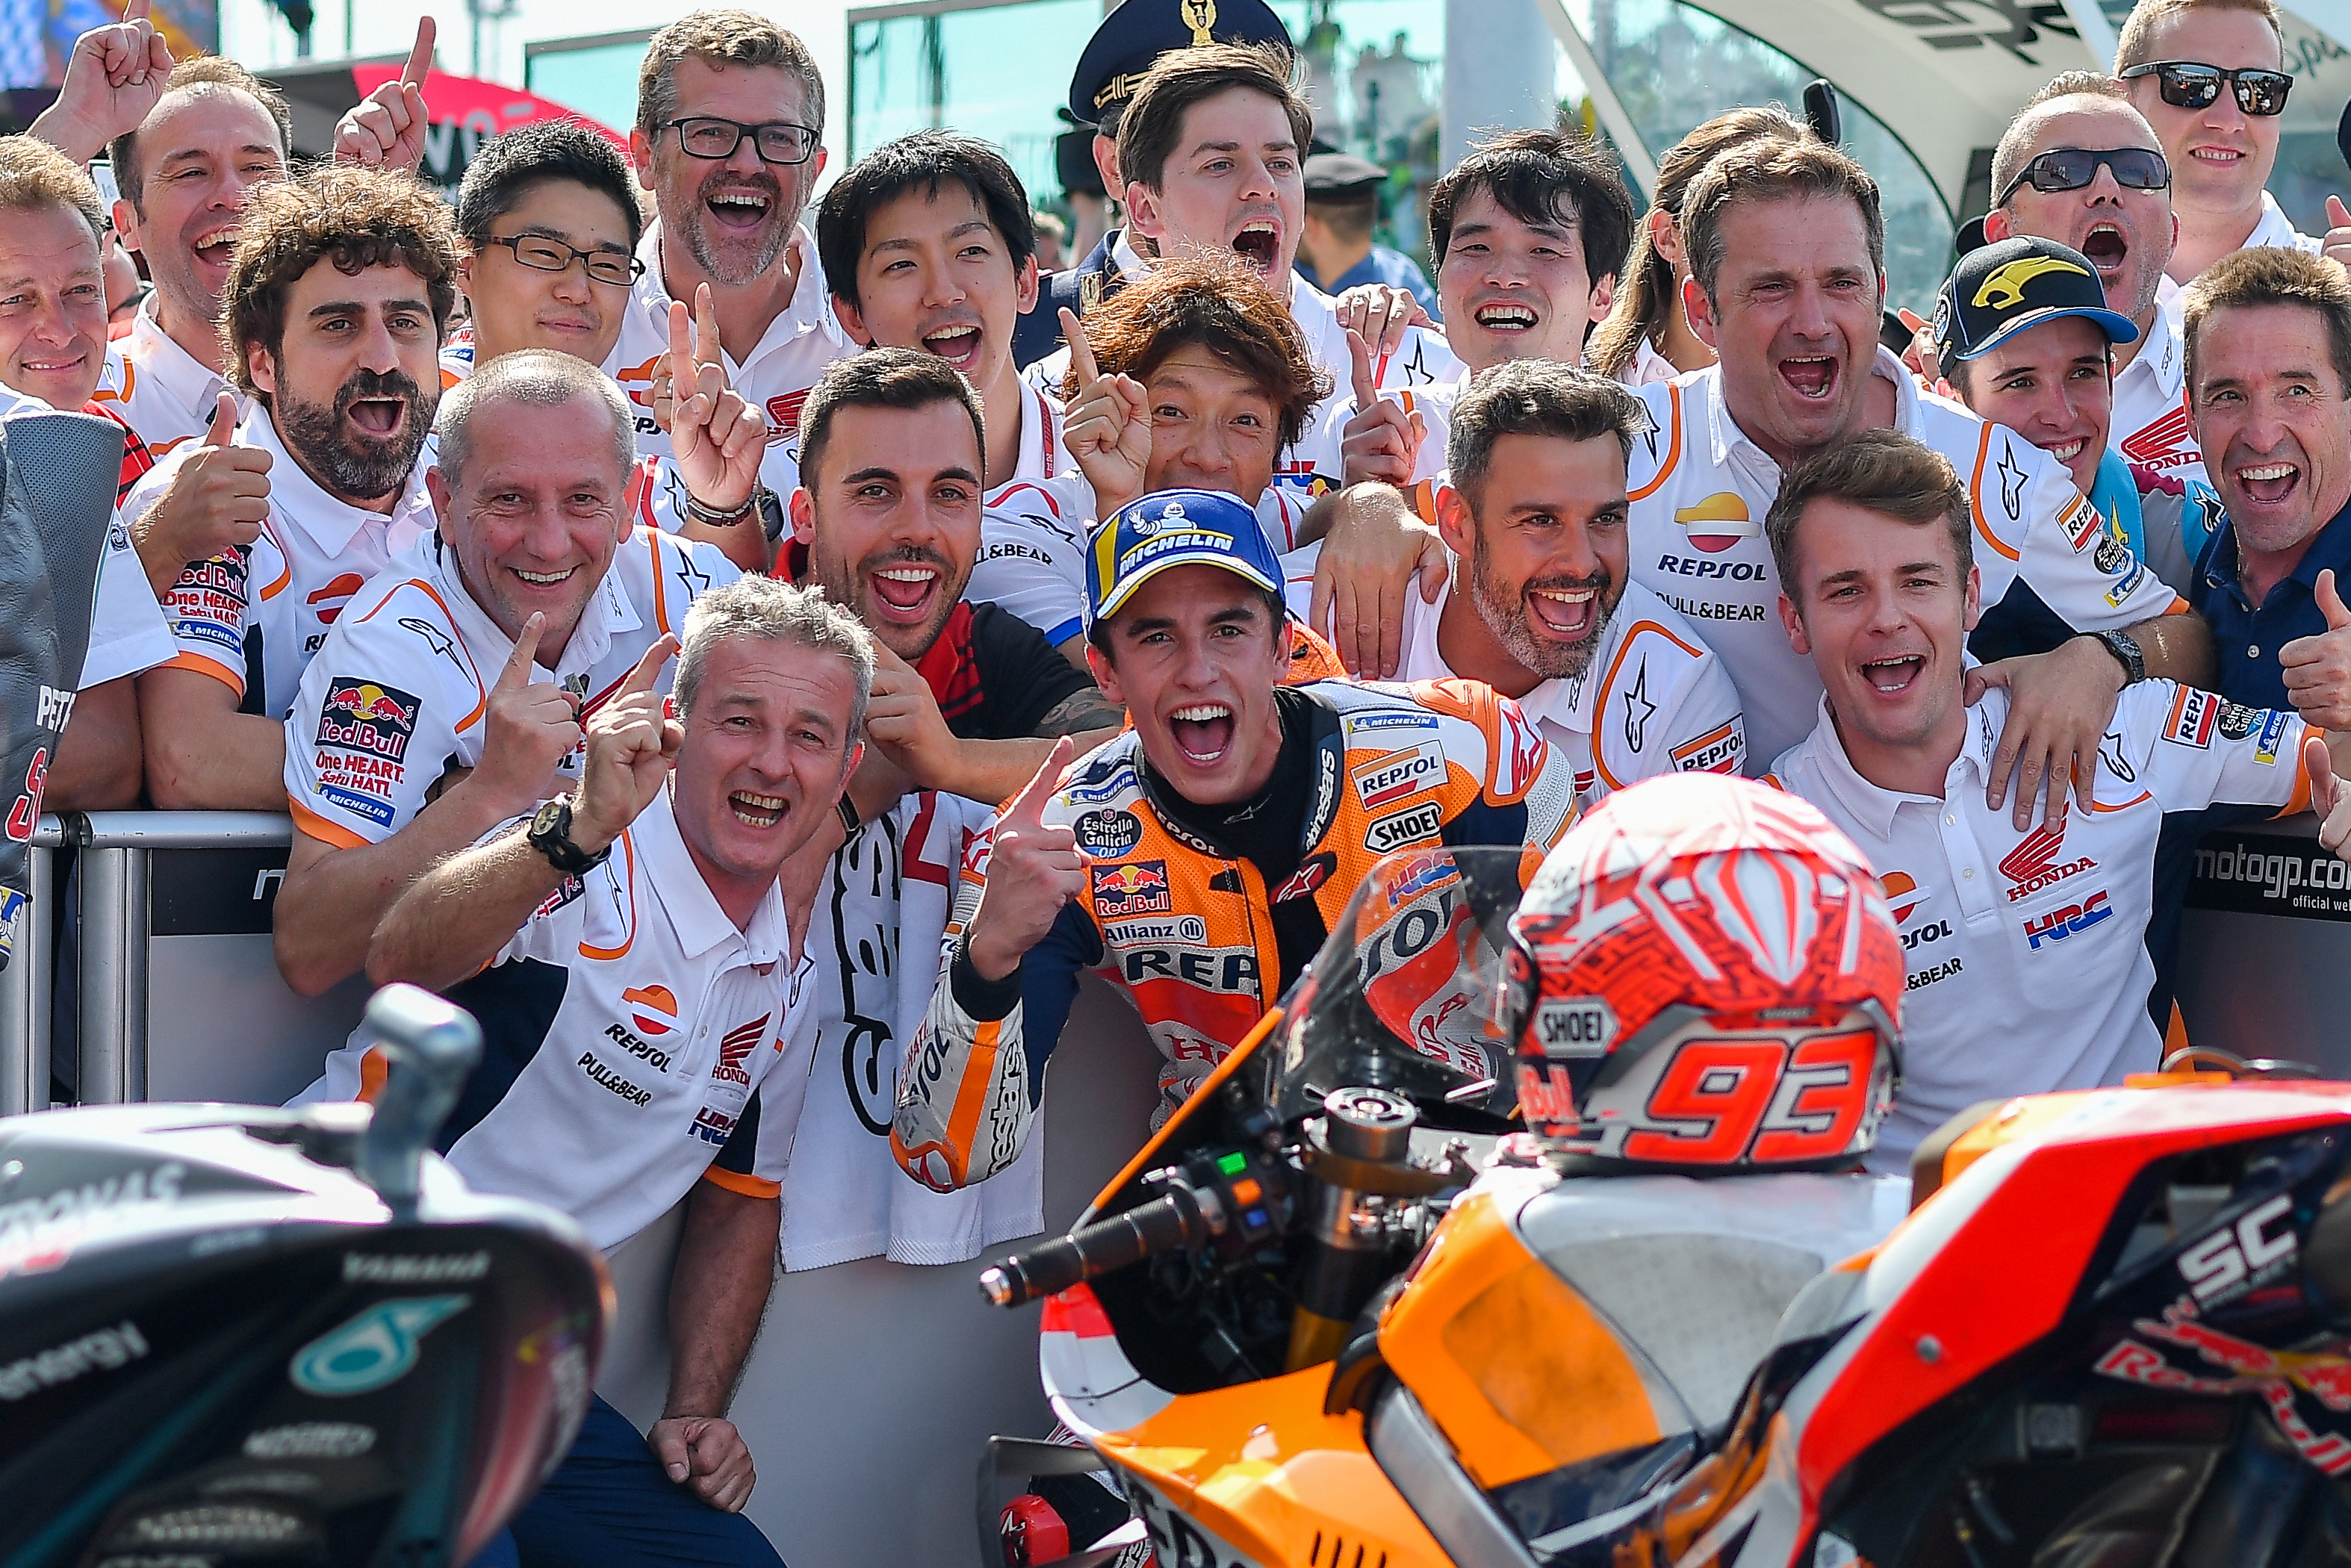 Motorcycling: Marquez extends MotoGP lead with San Marino win